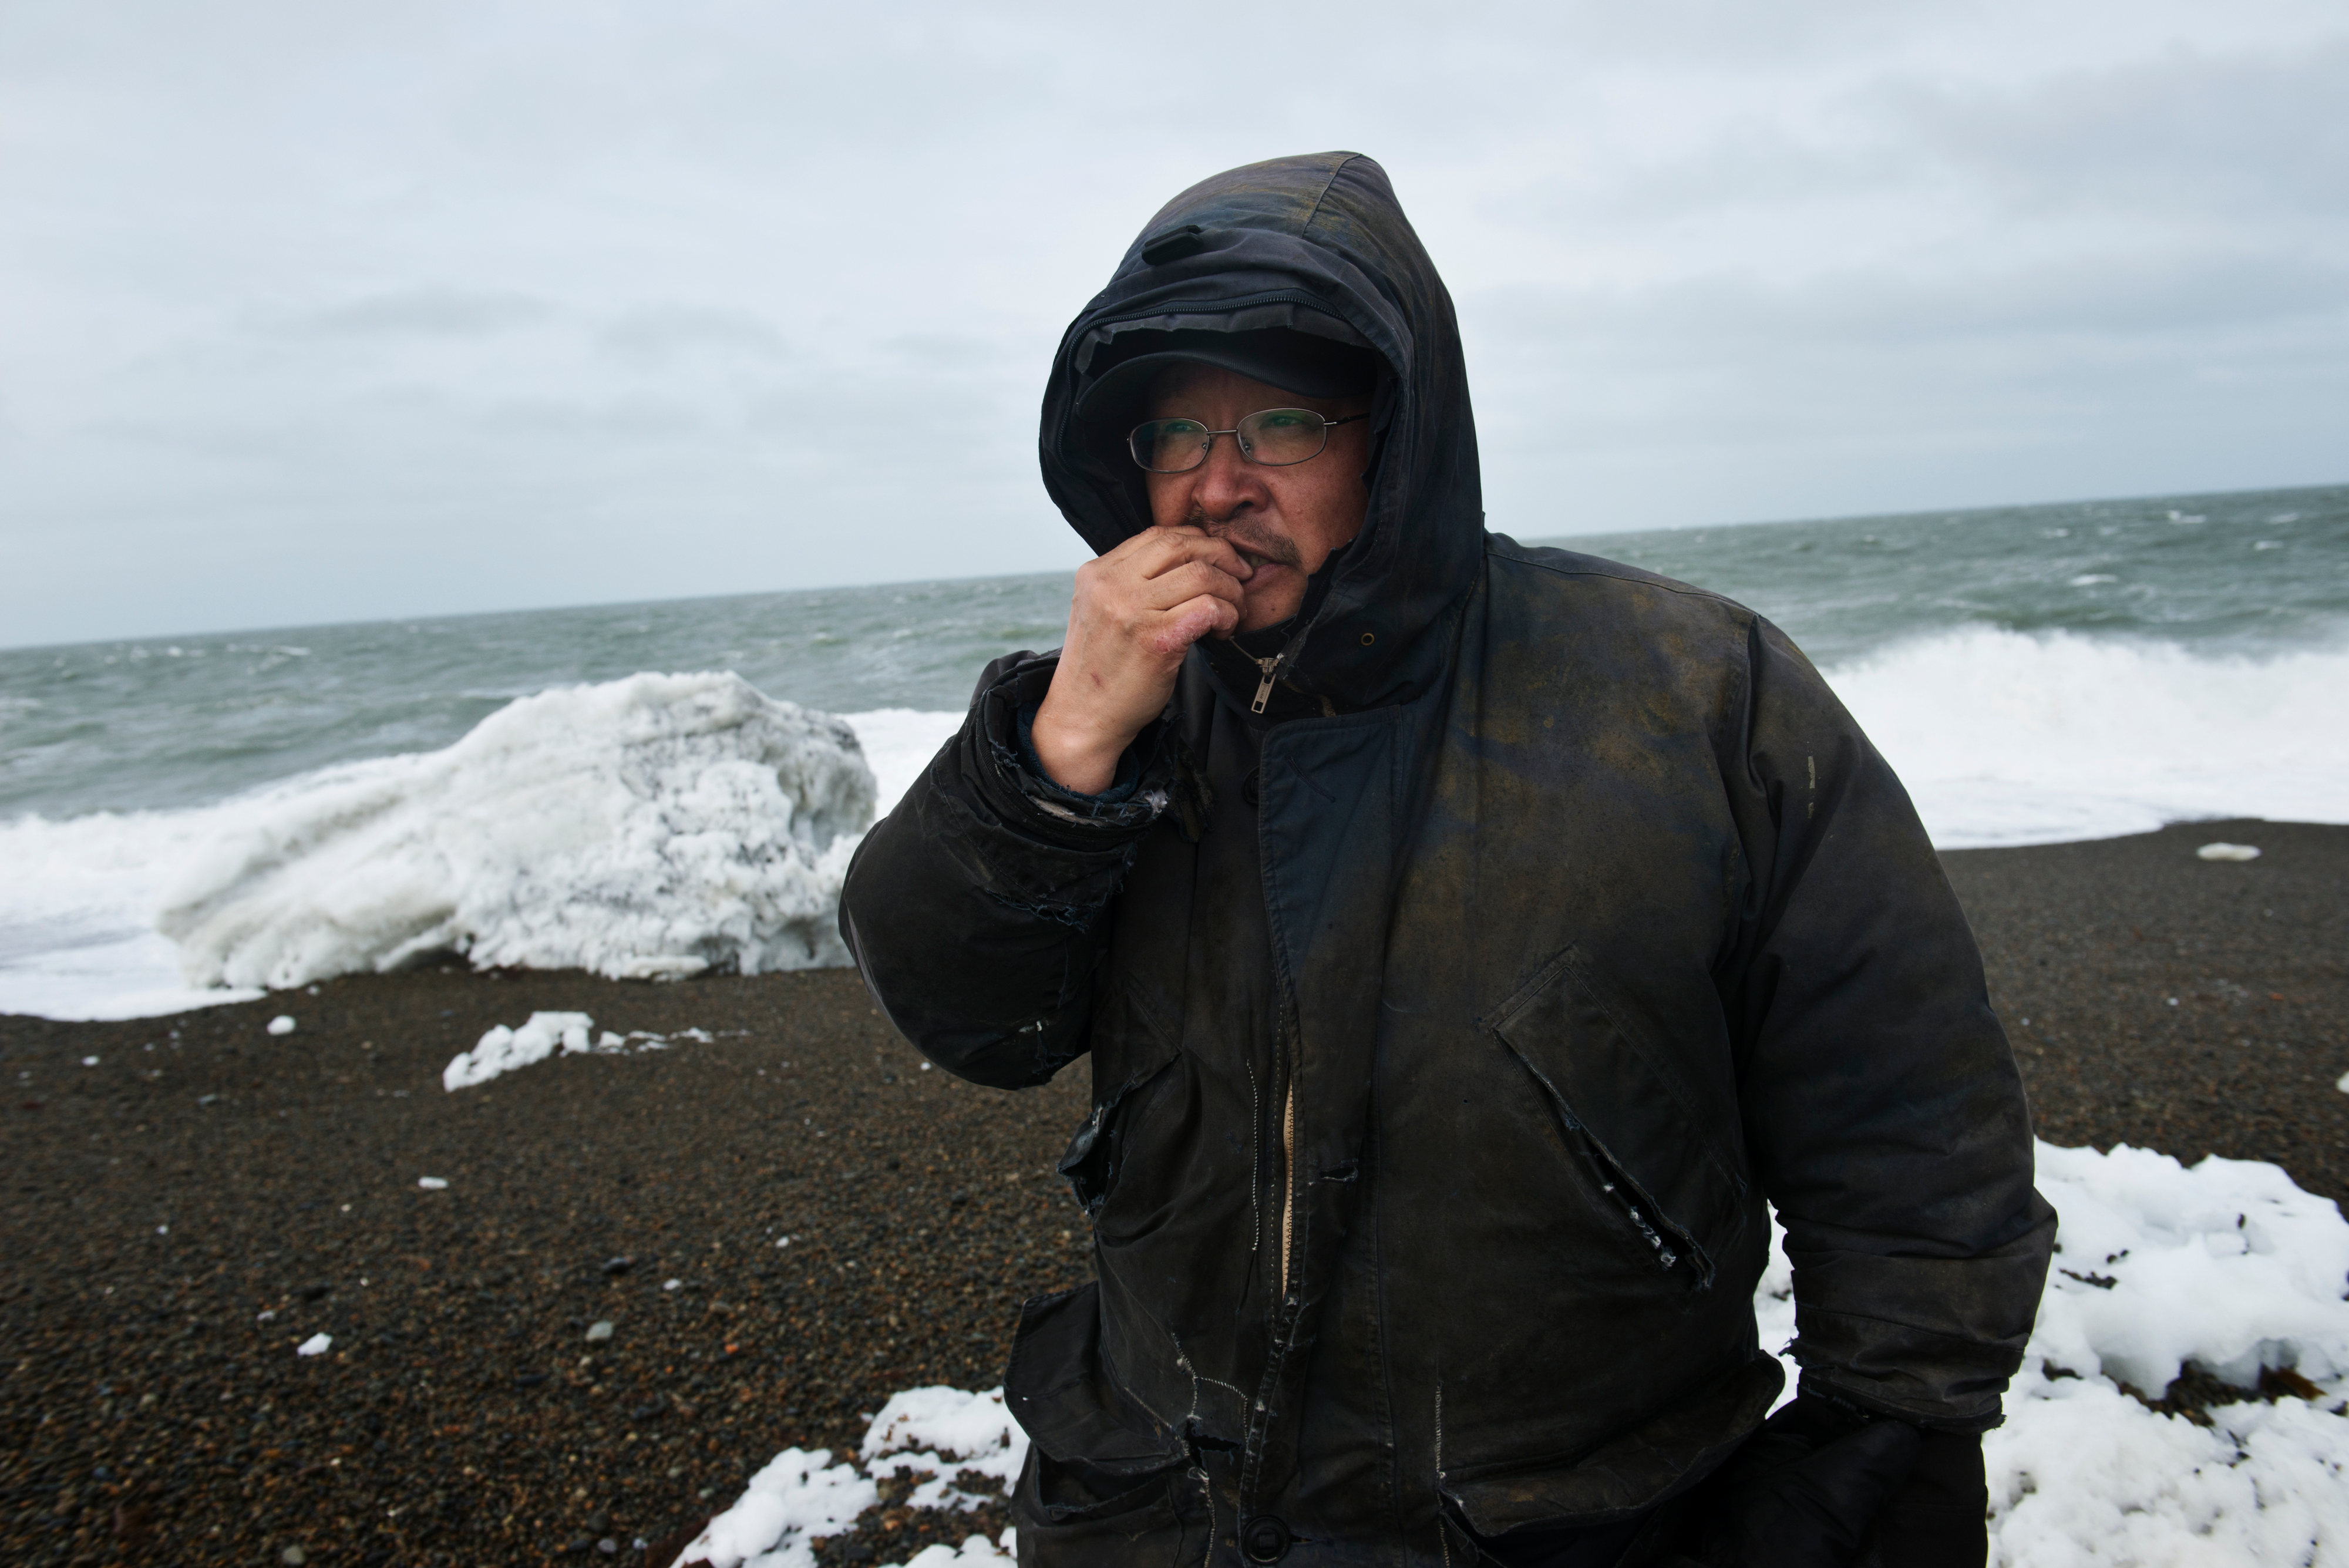 Edmond Apassingok takes a bite of kemkeghnak, one of several tunicates that wash ashore that many residents there eat. Photographed on April 24, 2017. (Marc Lester / Alaska Dispatch News)